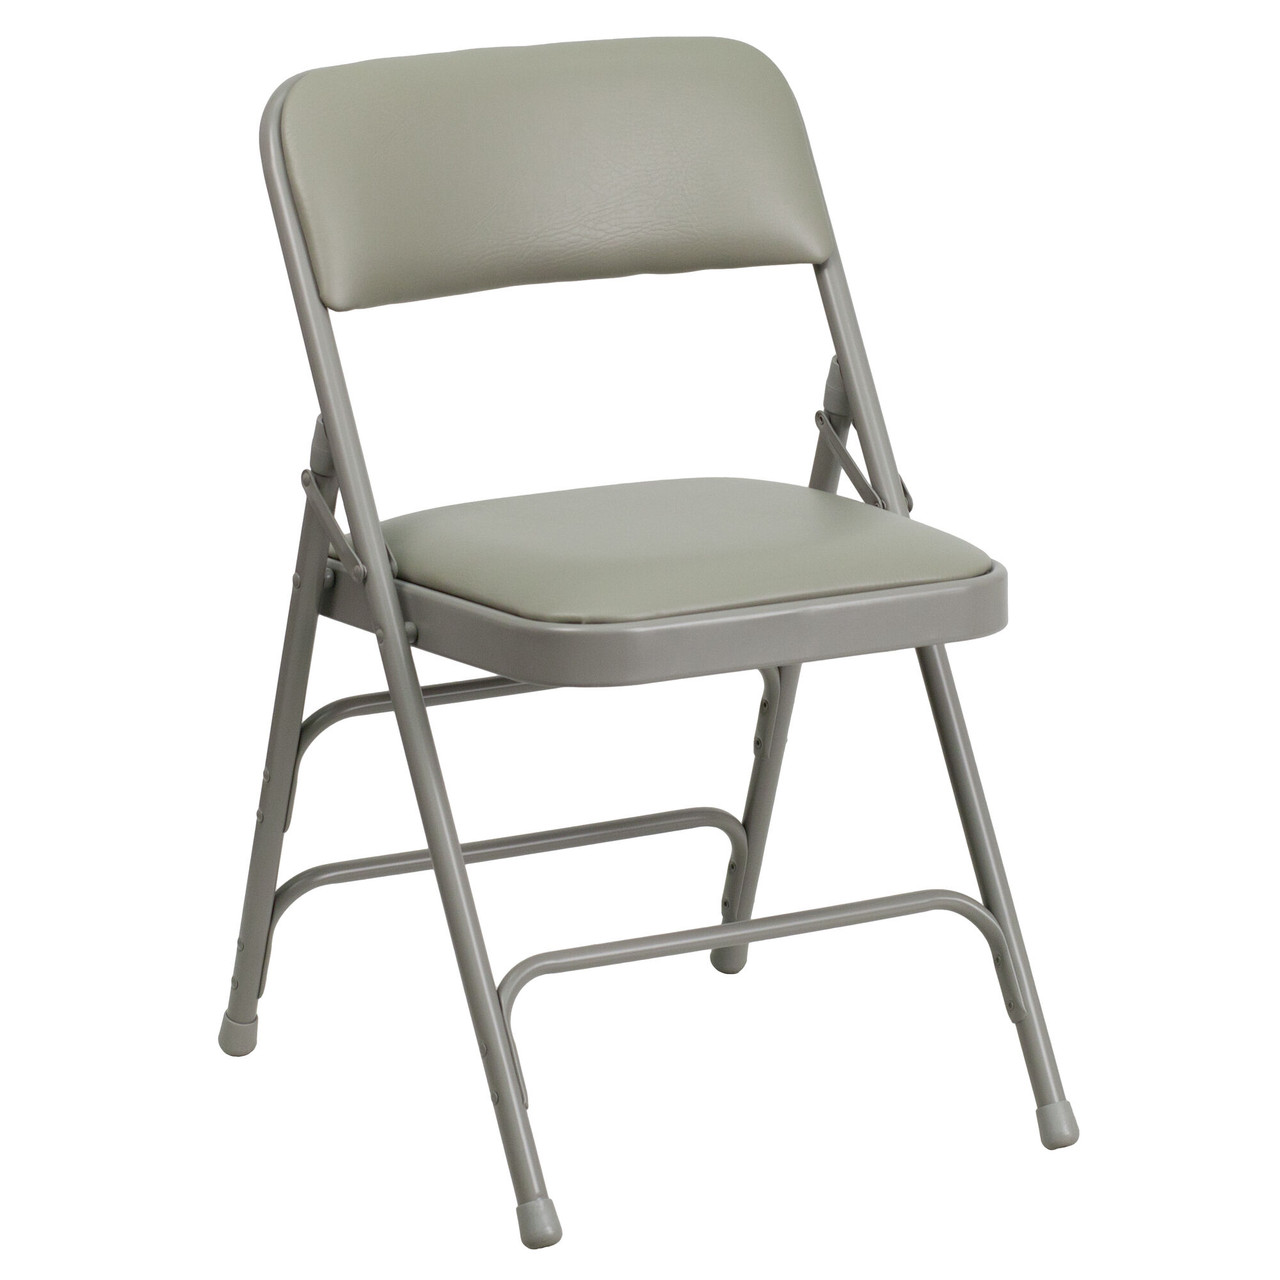 Advantage Grey Padded Metal Folding Chair Dove Grey 1 In Vinyl Seat Ha Mc309av Gy Gg